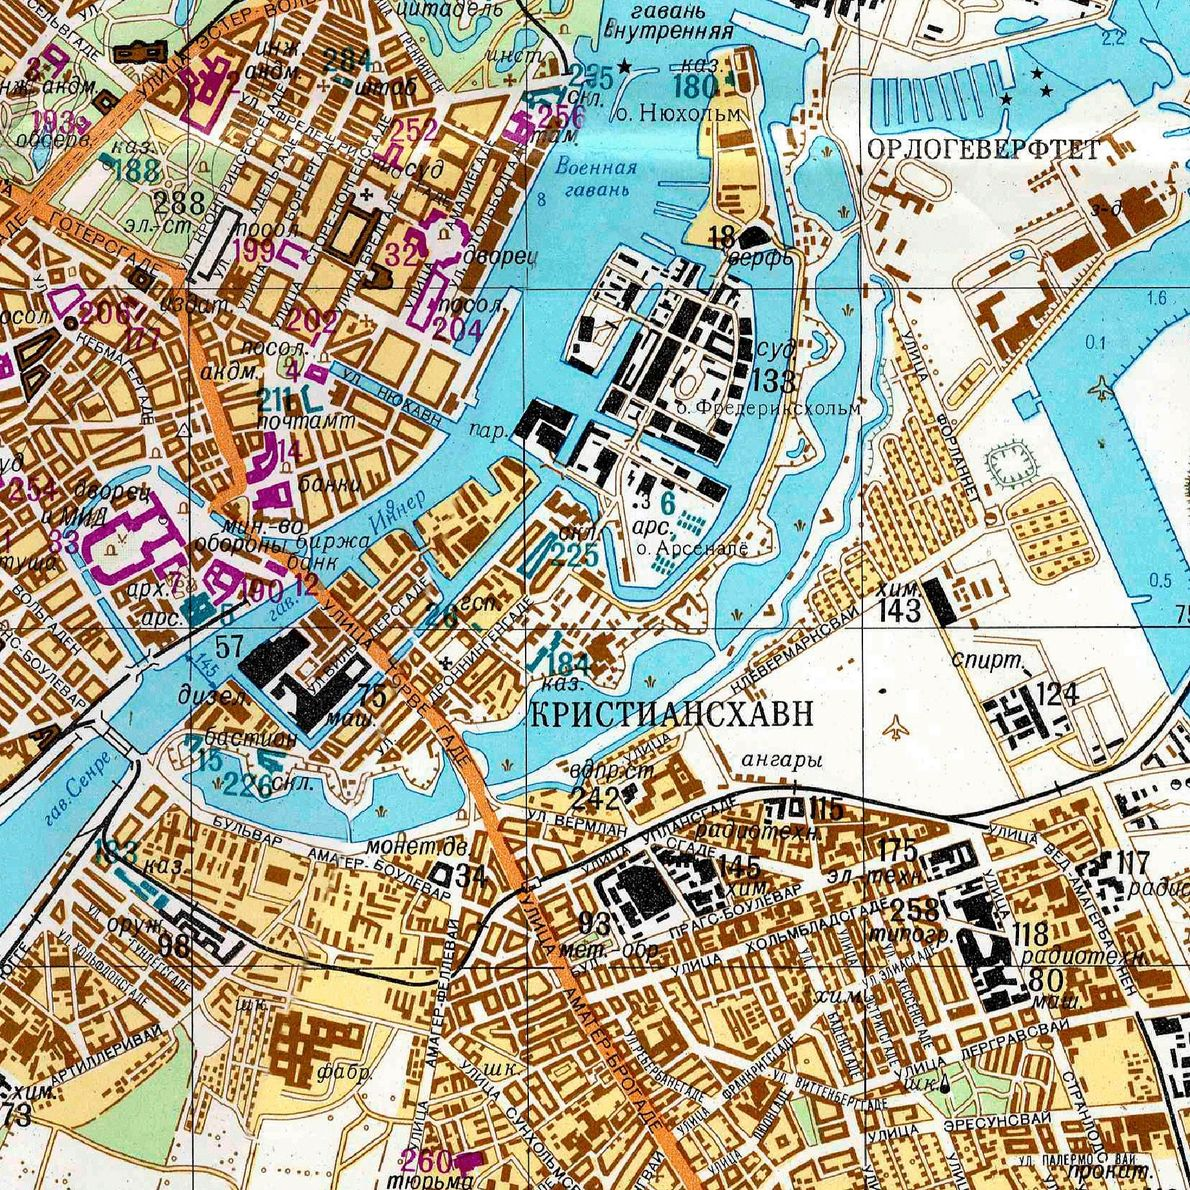 The Soviets also mapped European cities, including Copenhagen, shown here on a map printed in 1985.